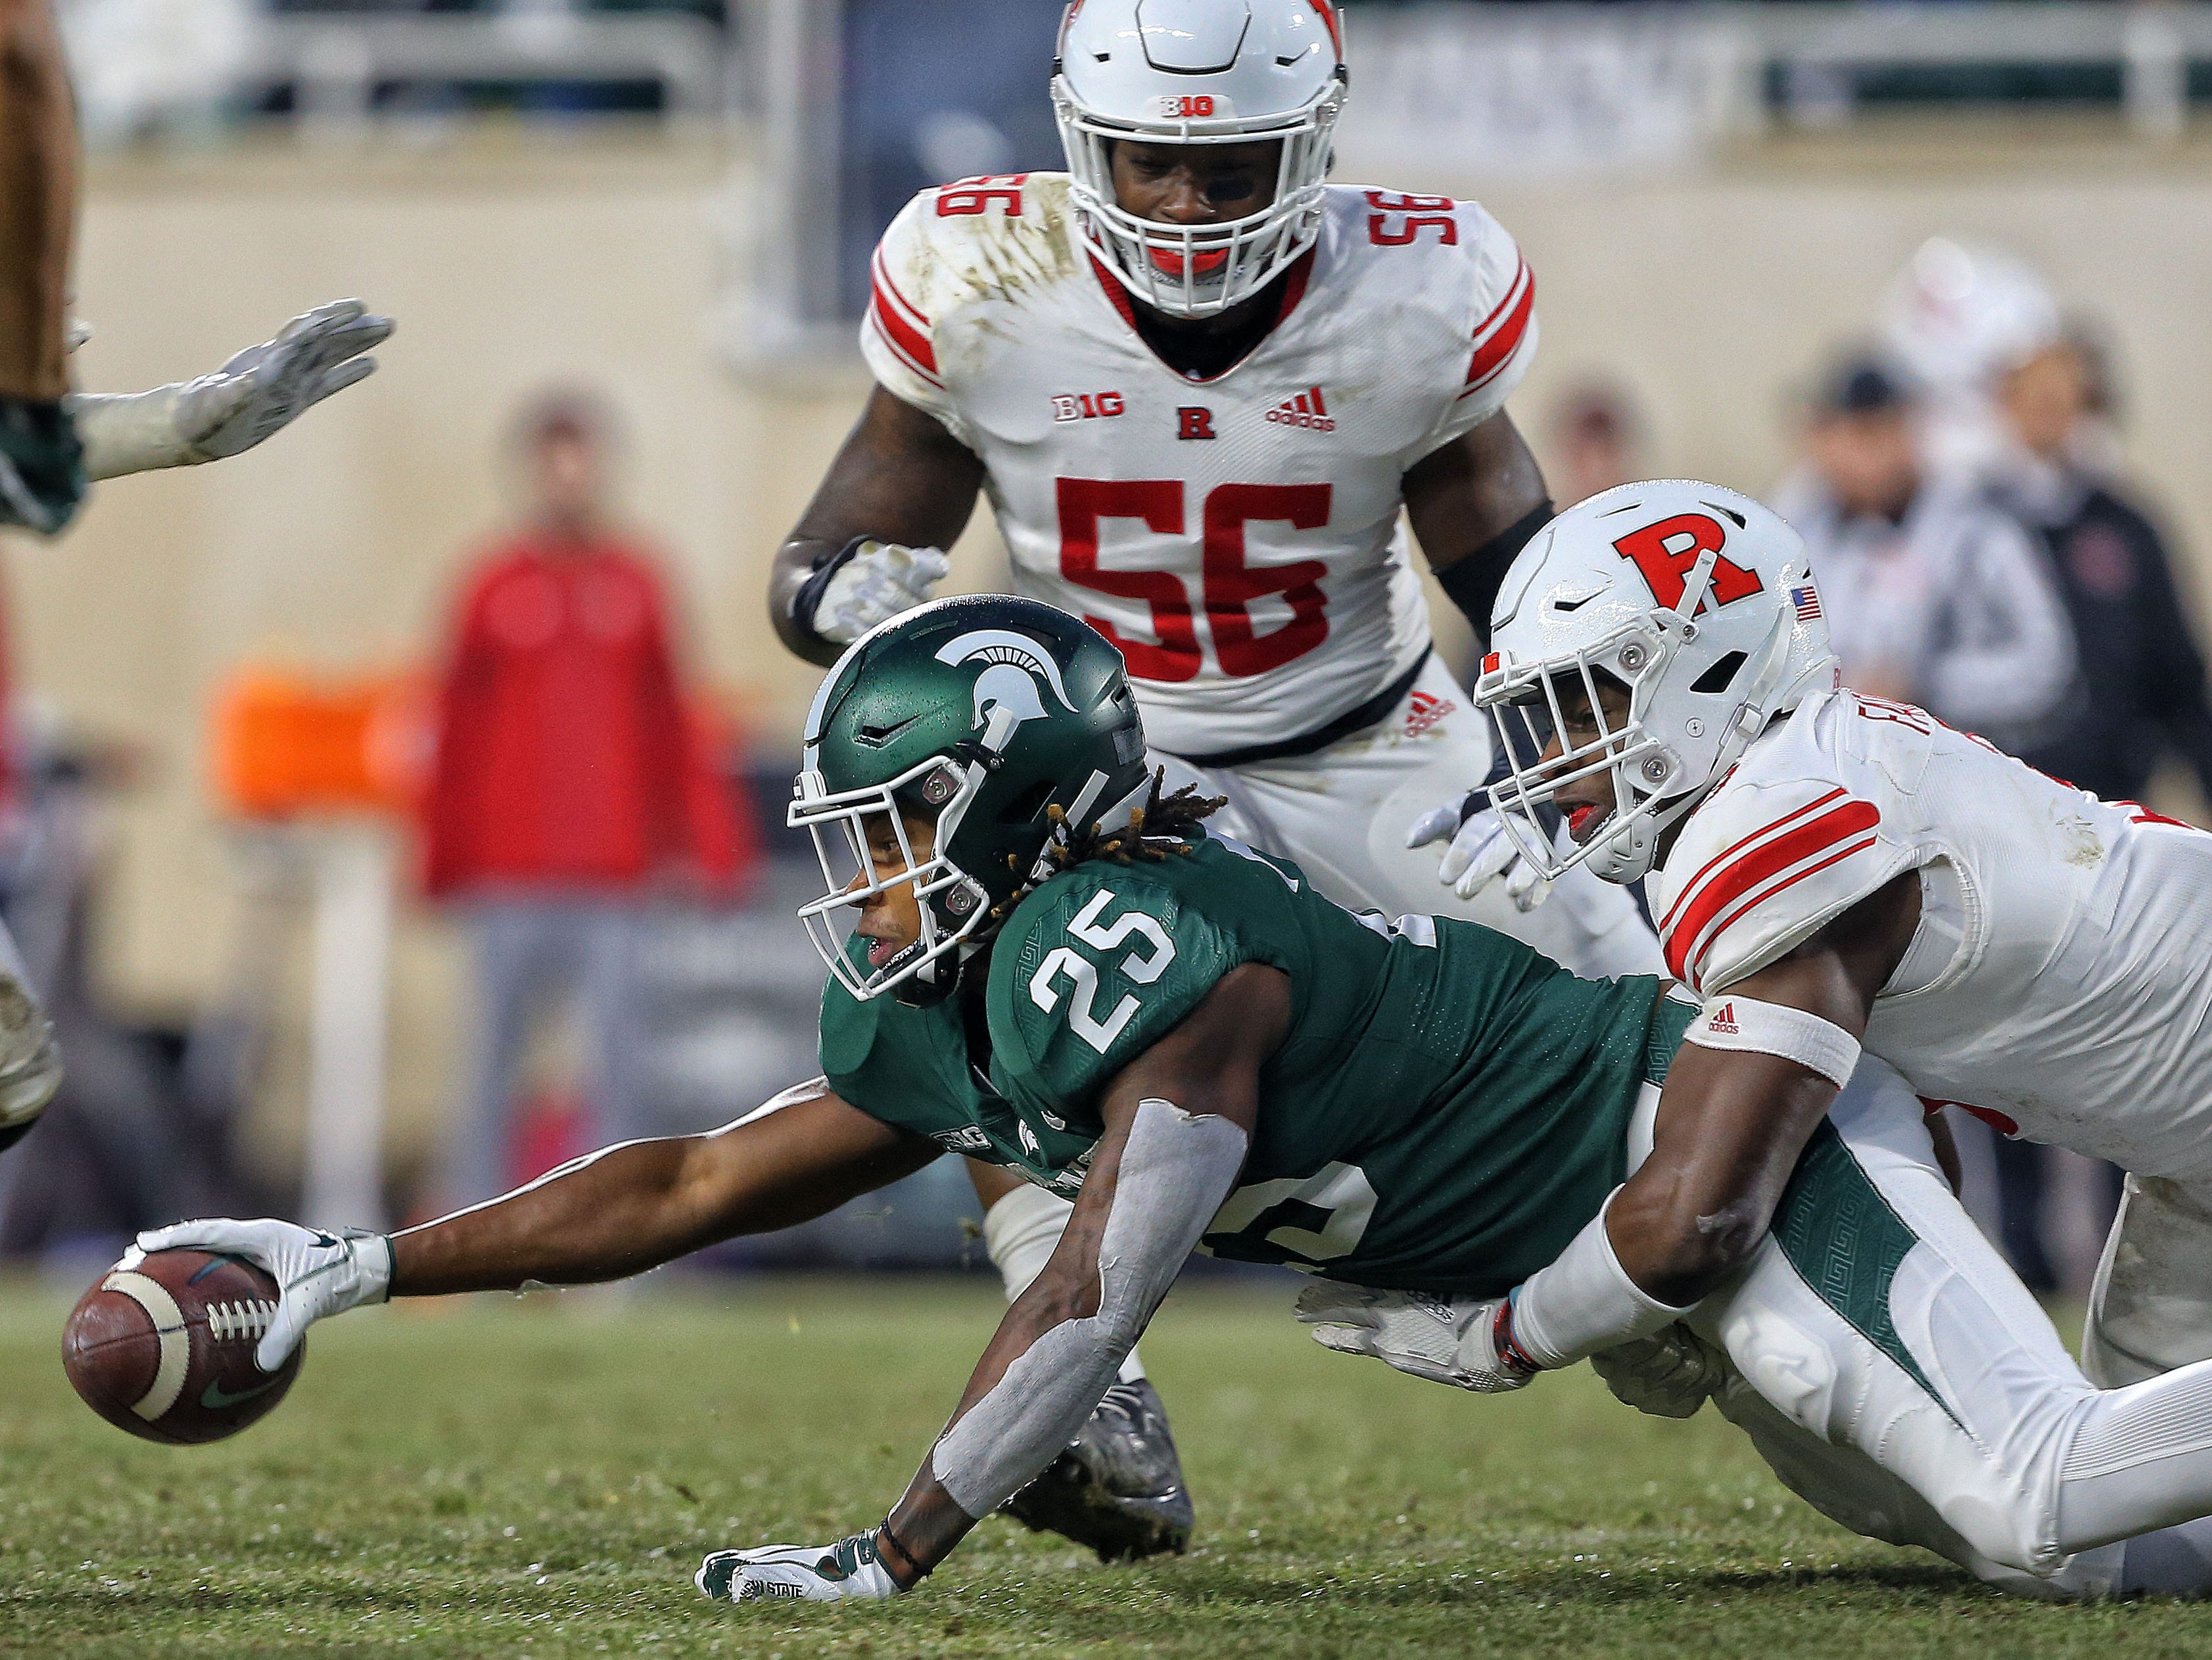 Nov 24, 2018; East Lansing, MI, USA; Michigan State Spartans wide receiver Darrell Stewart Jr. (25) reaches for extra yards during the first half against the Rutgers Scarlet Knights at Spartan Stadium. Mandatory Credit: Mike Carter-USA TODAY Sports